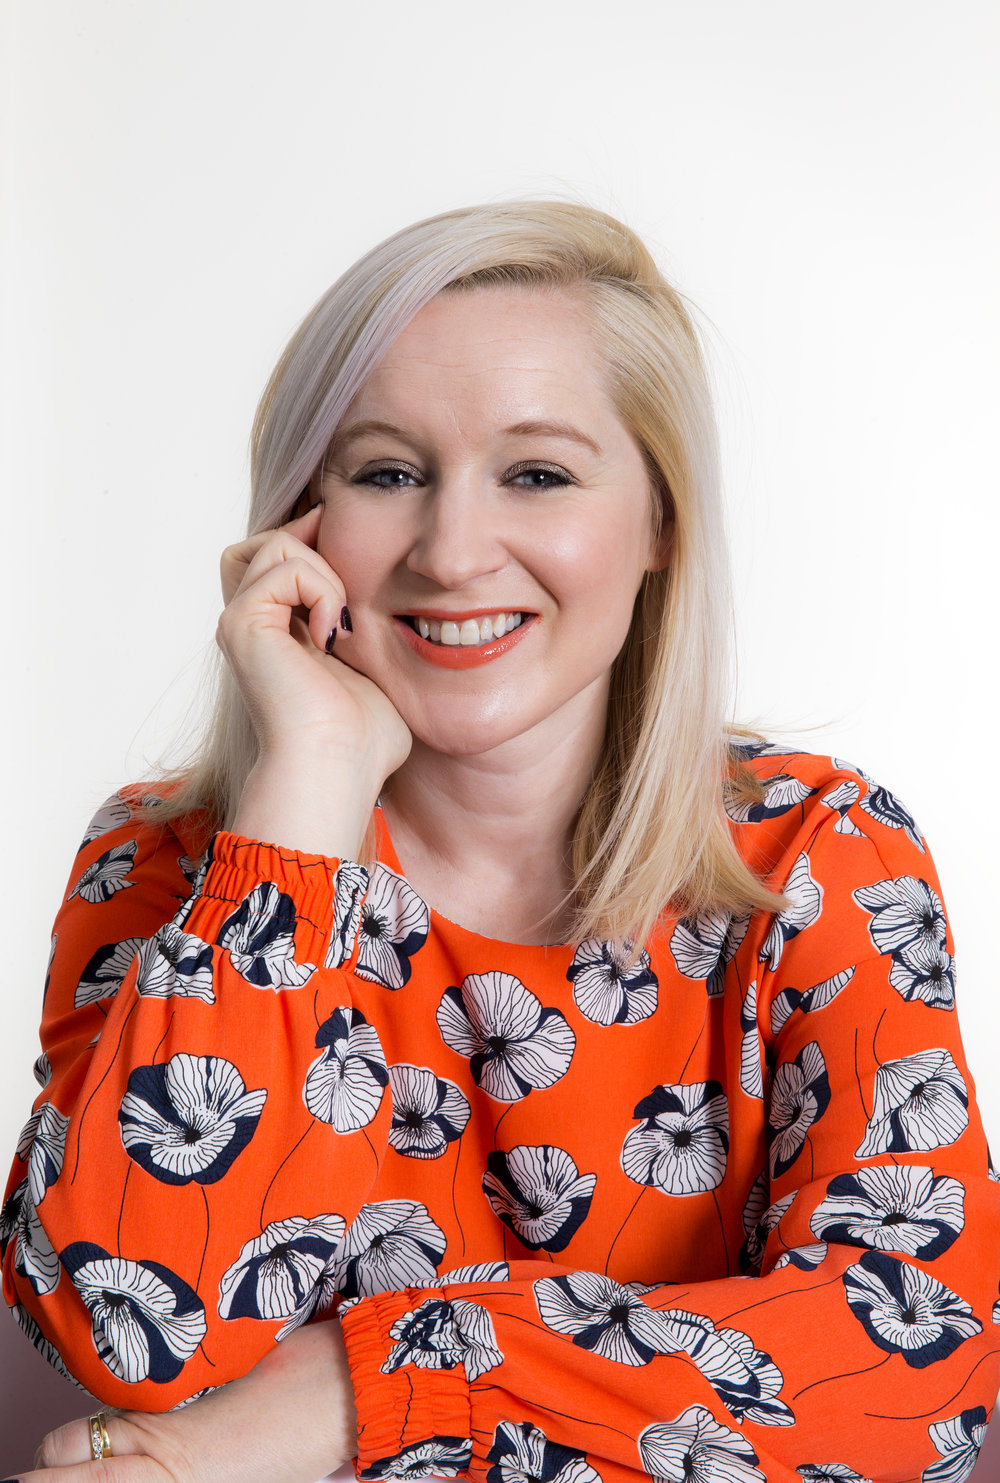 Nicola Kemp, Trends Editor at Campaign - Nicola has been leaving a trail of positive impact behind her in setting a new agenda for the magazine. She's punching age old sexism and gender equality right in the face of the marketing industry. We find out what drives her to push diversity beyond the soundbite.